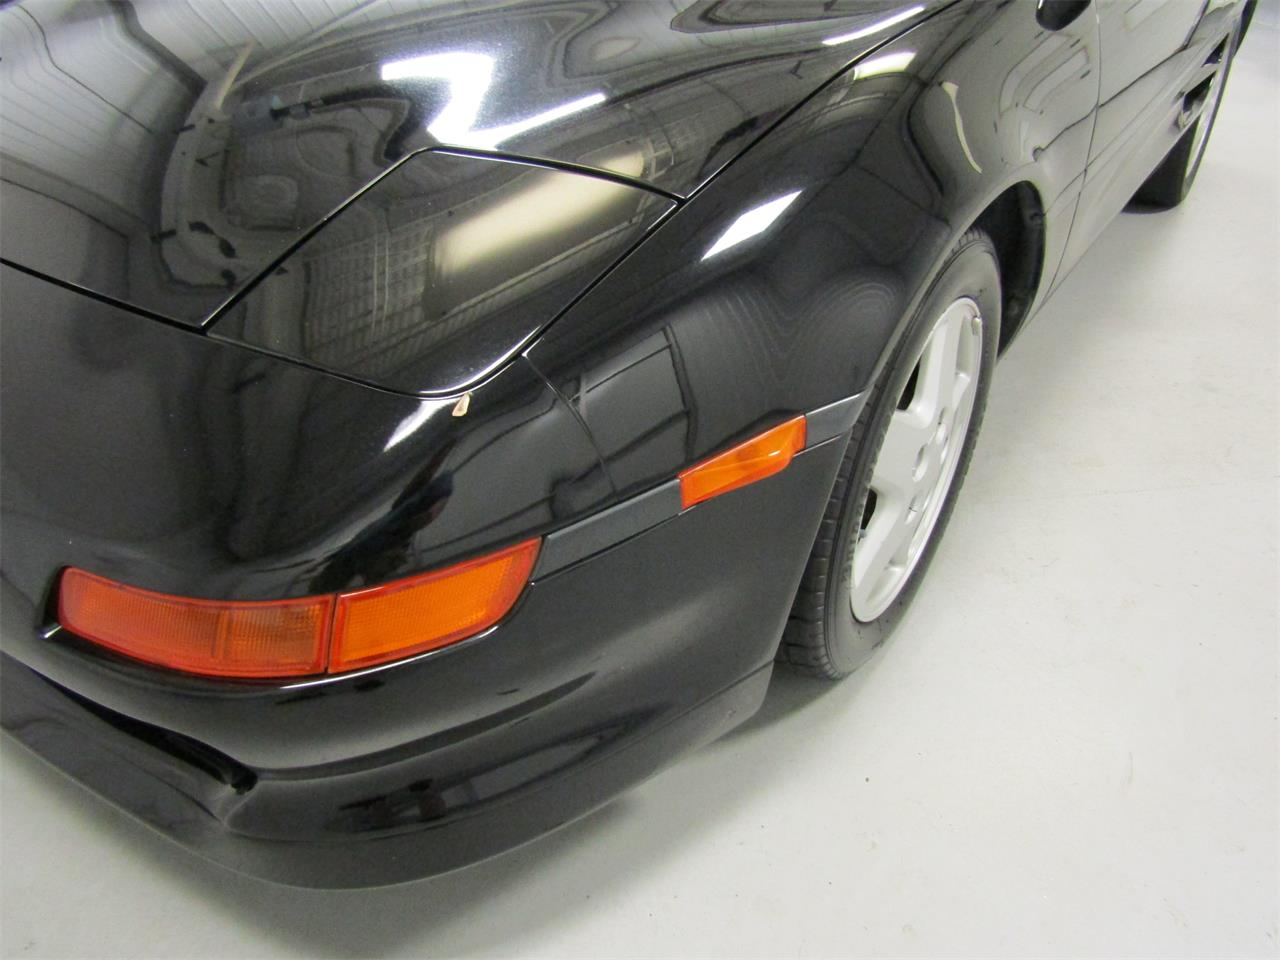 Large Picture of 1992 MR2 located in Virginia - $16,991.00 - OLED